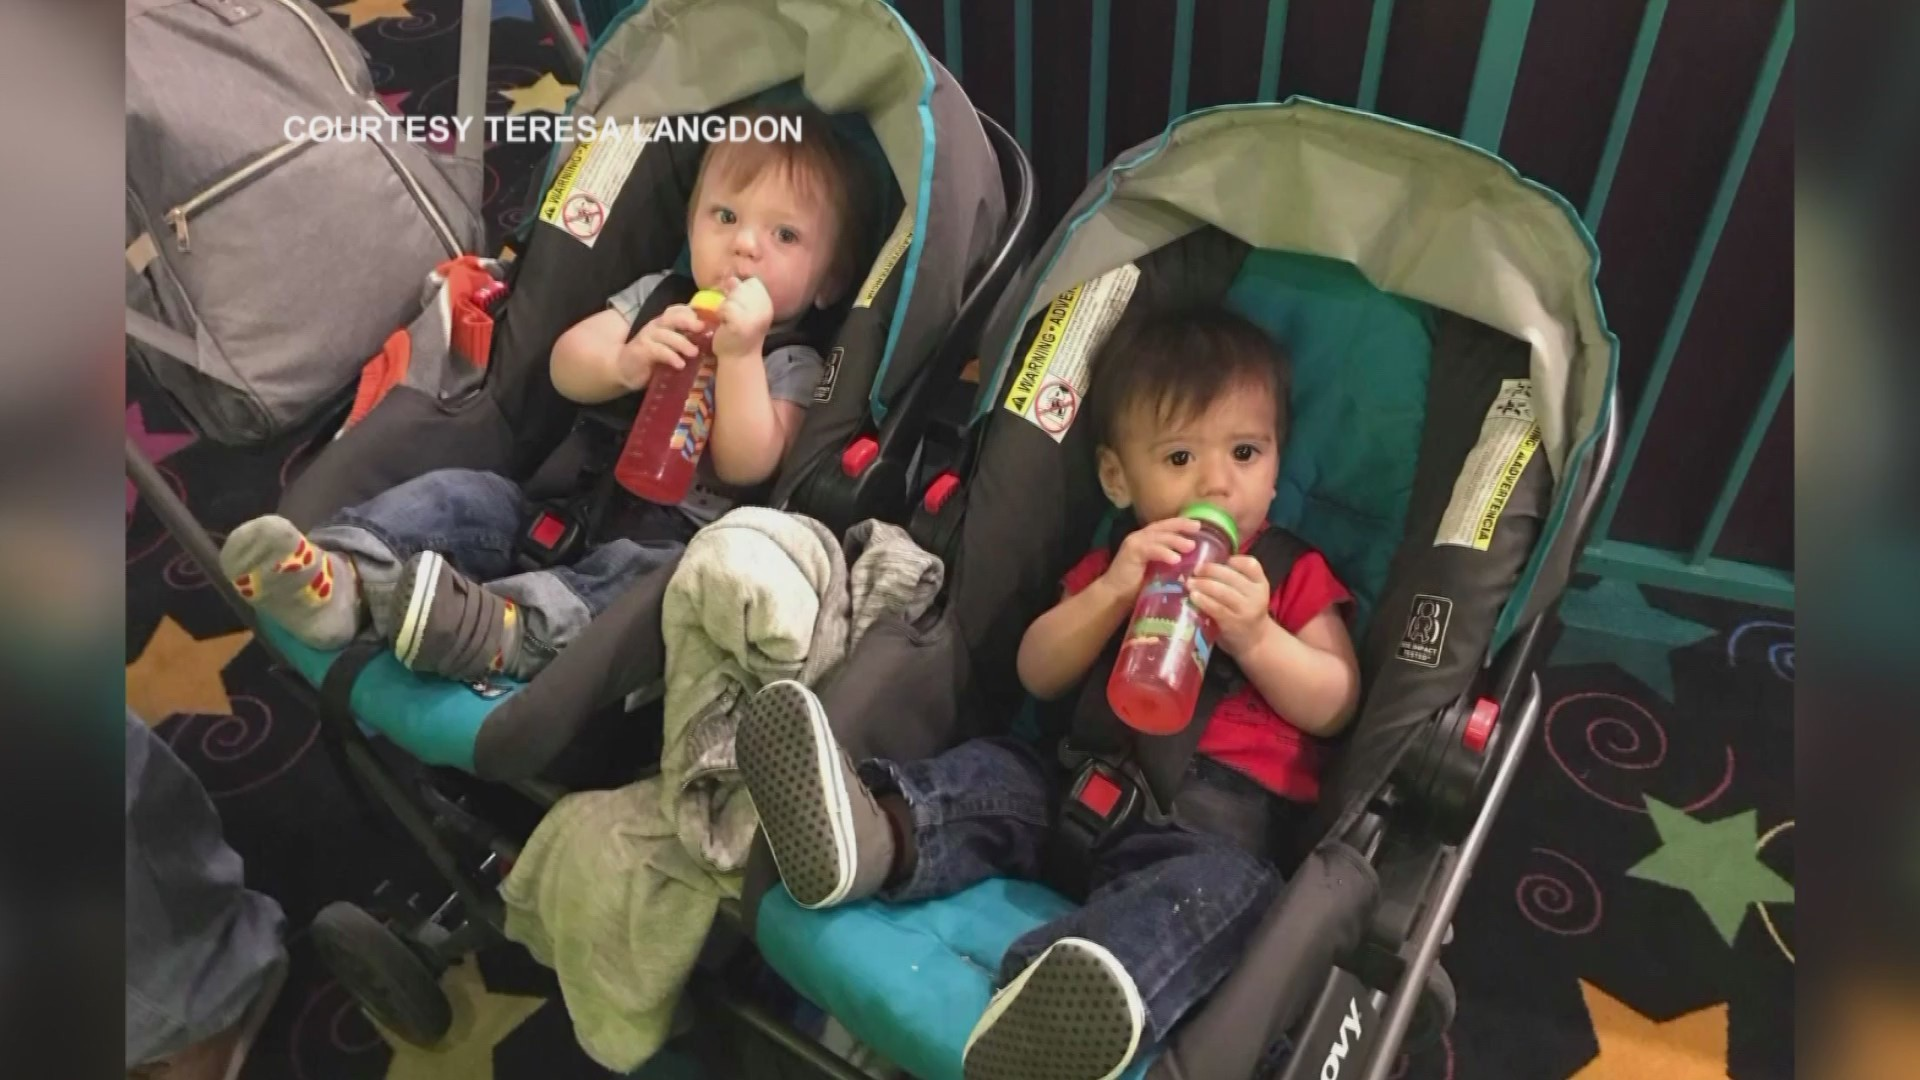 Ten_month_old_twin_boys_allegedly_drowne_0_20181207071919-60044164